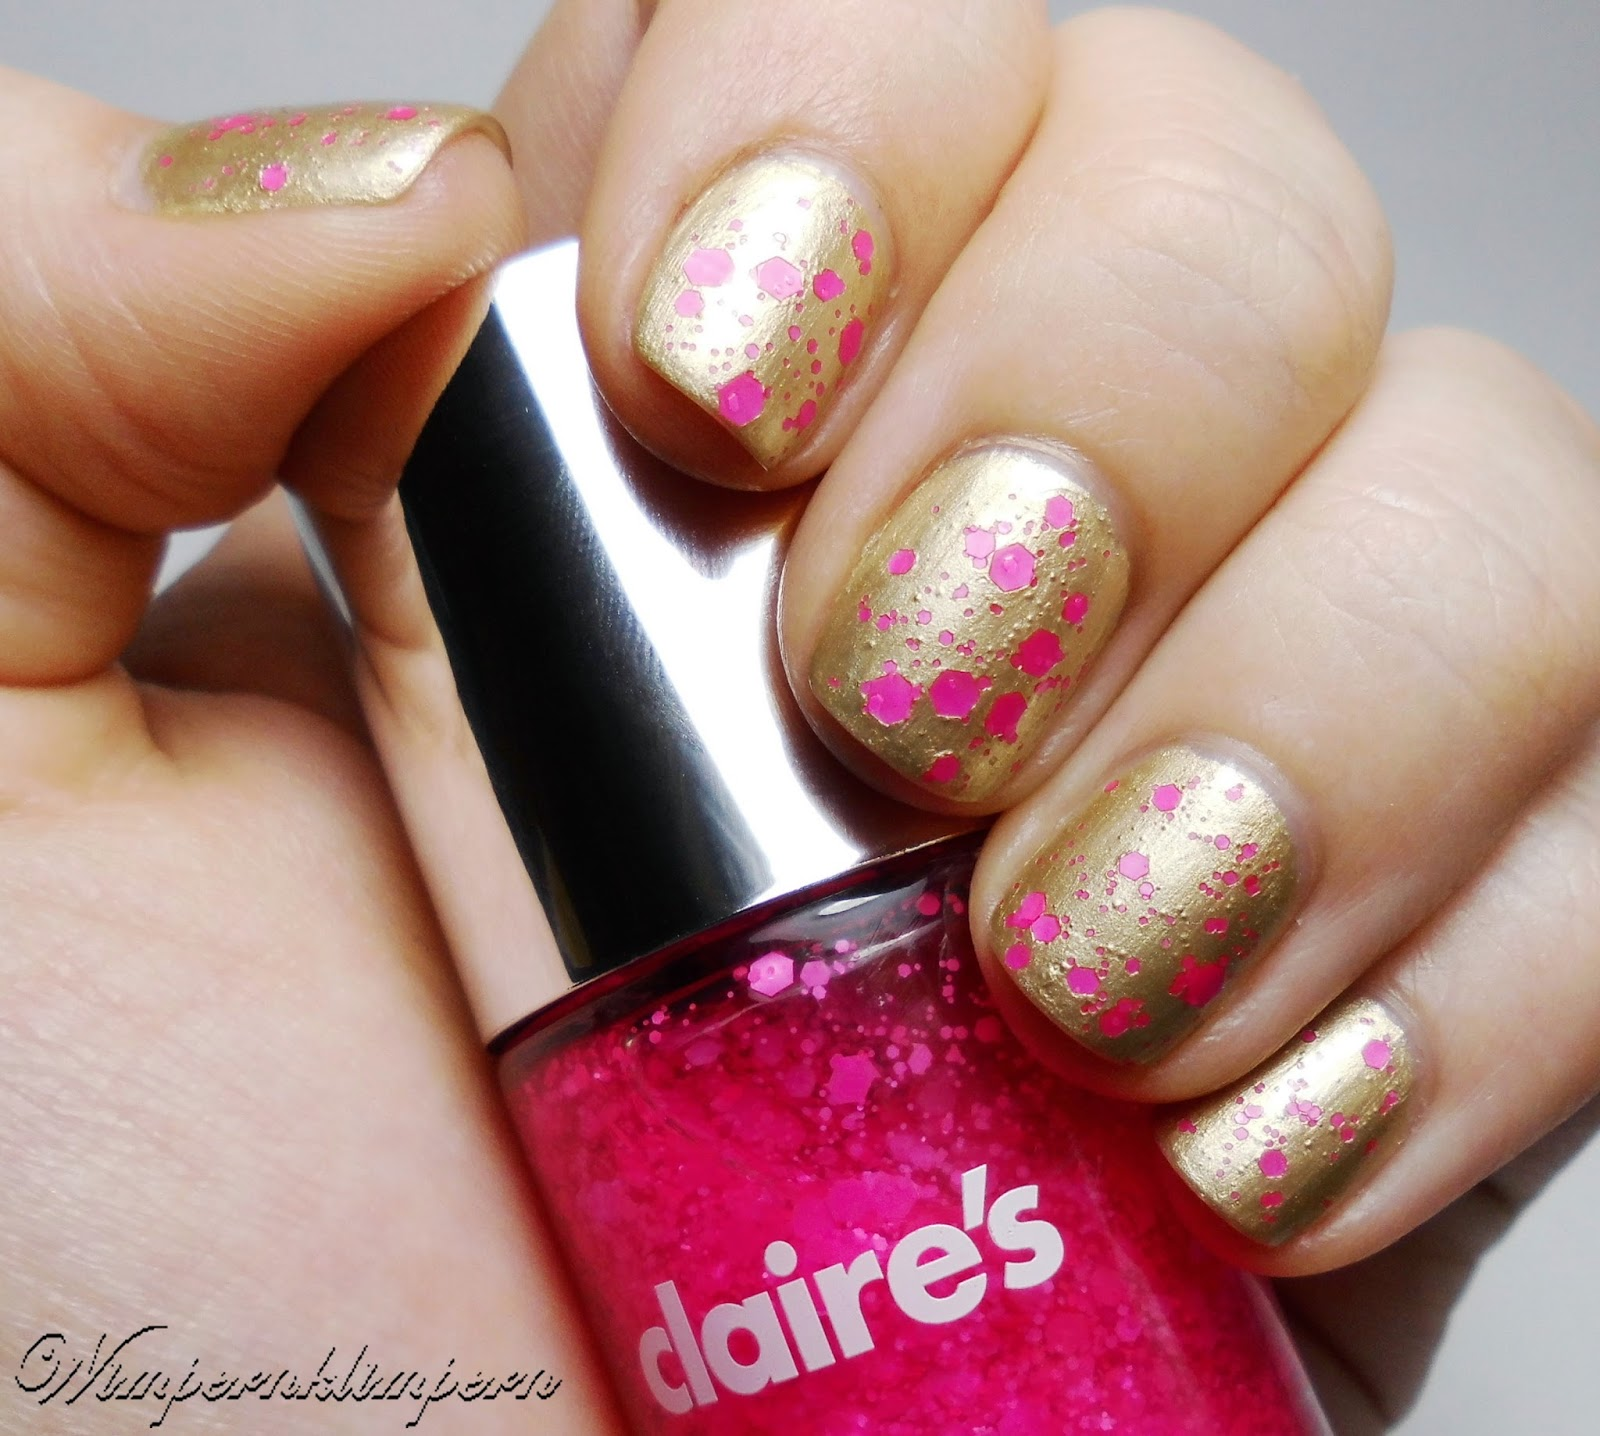 Nageldesign Gold Pink komplett